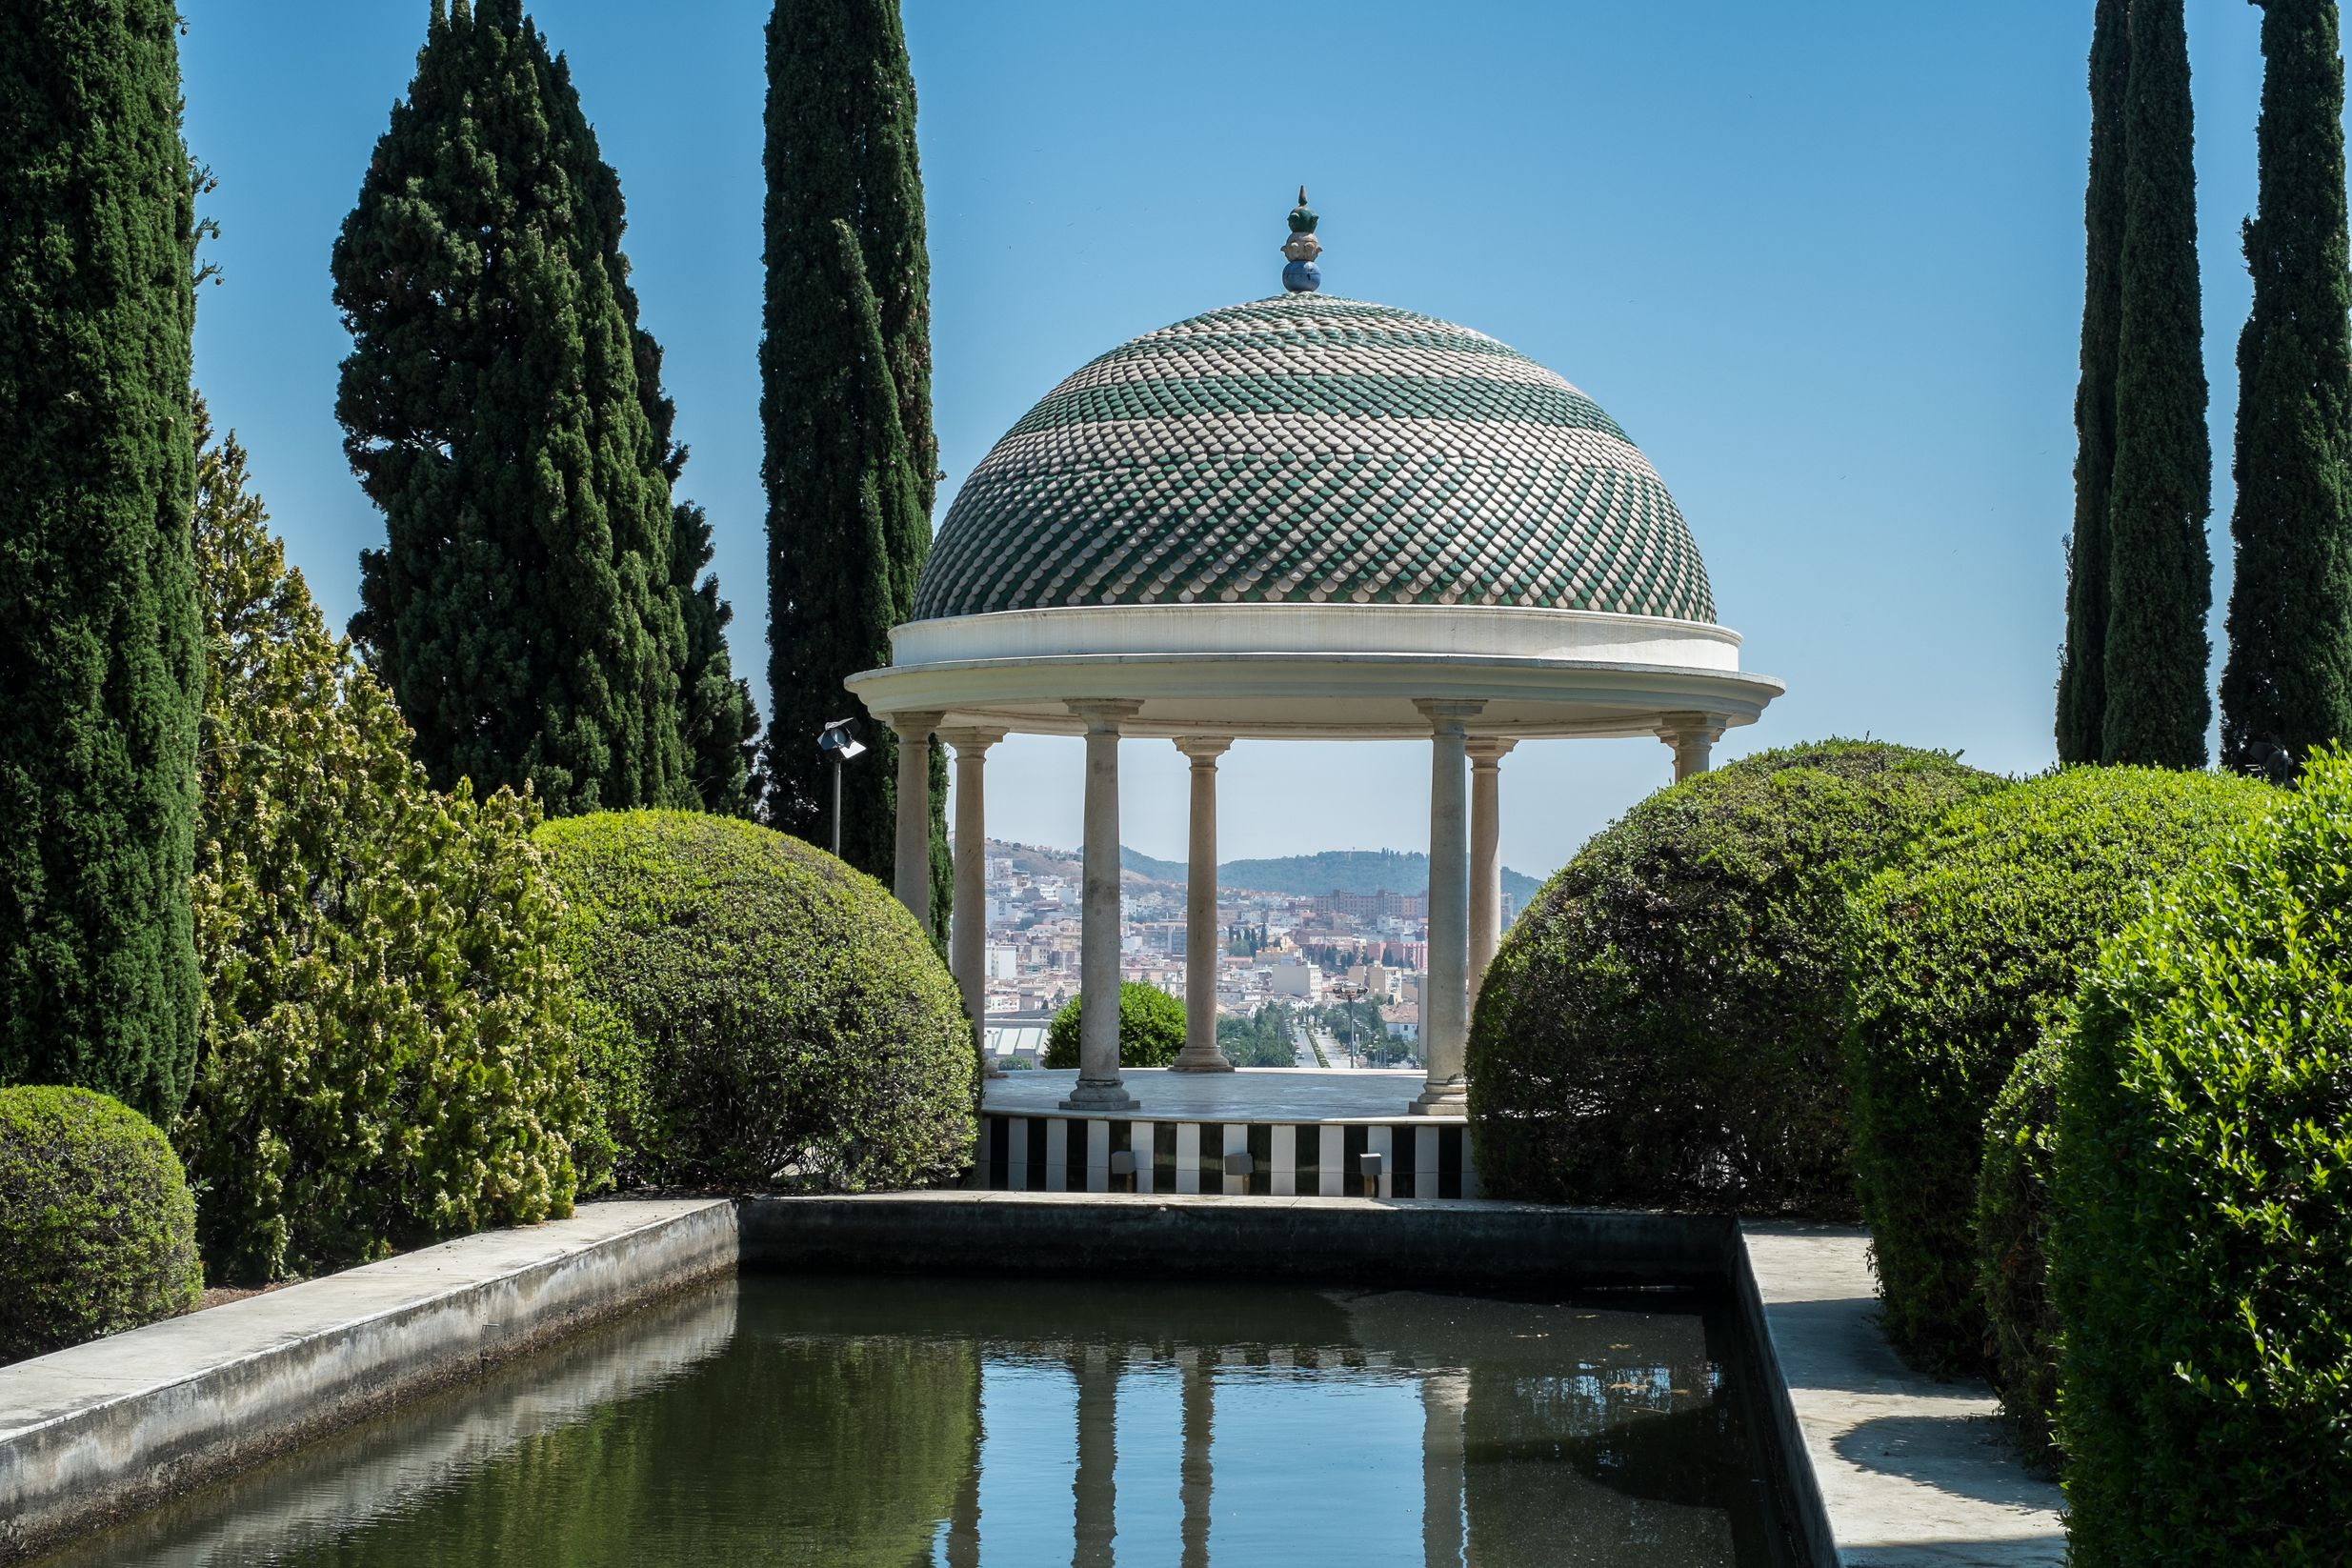 Conception Botanical Garden, one of the best things to do in Malaga